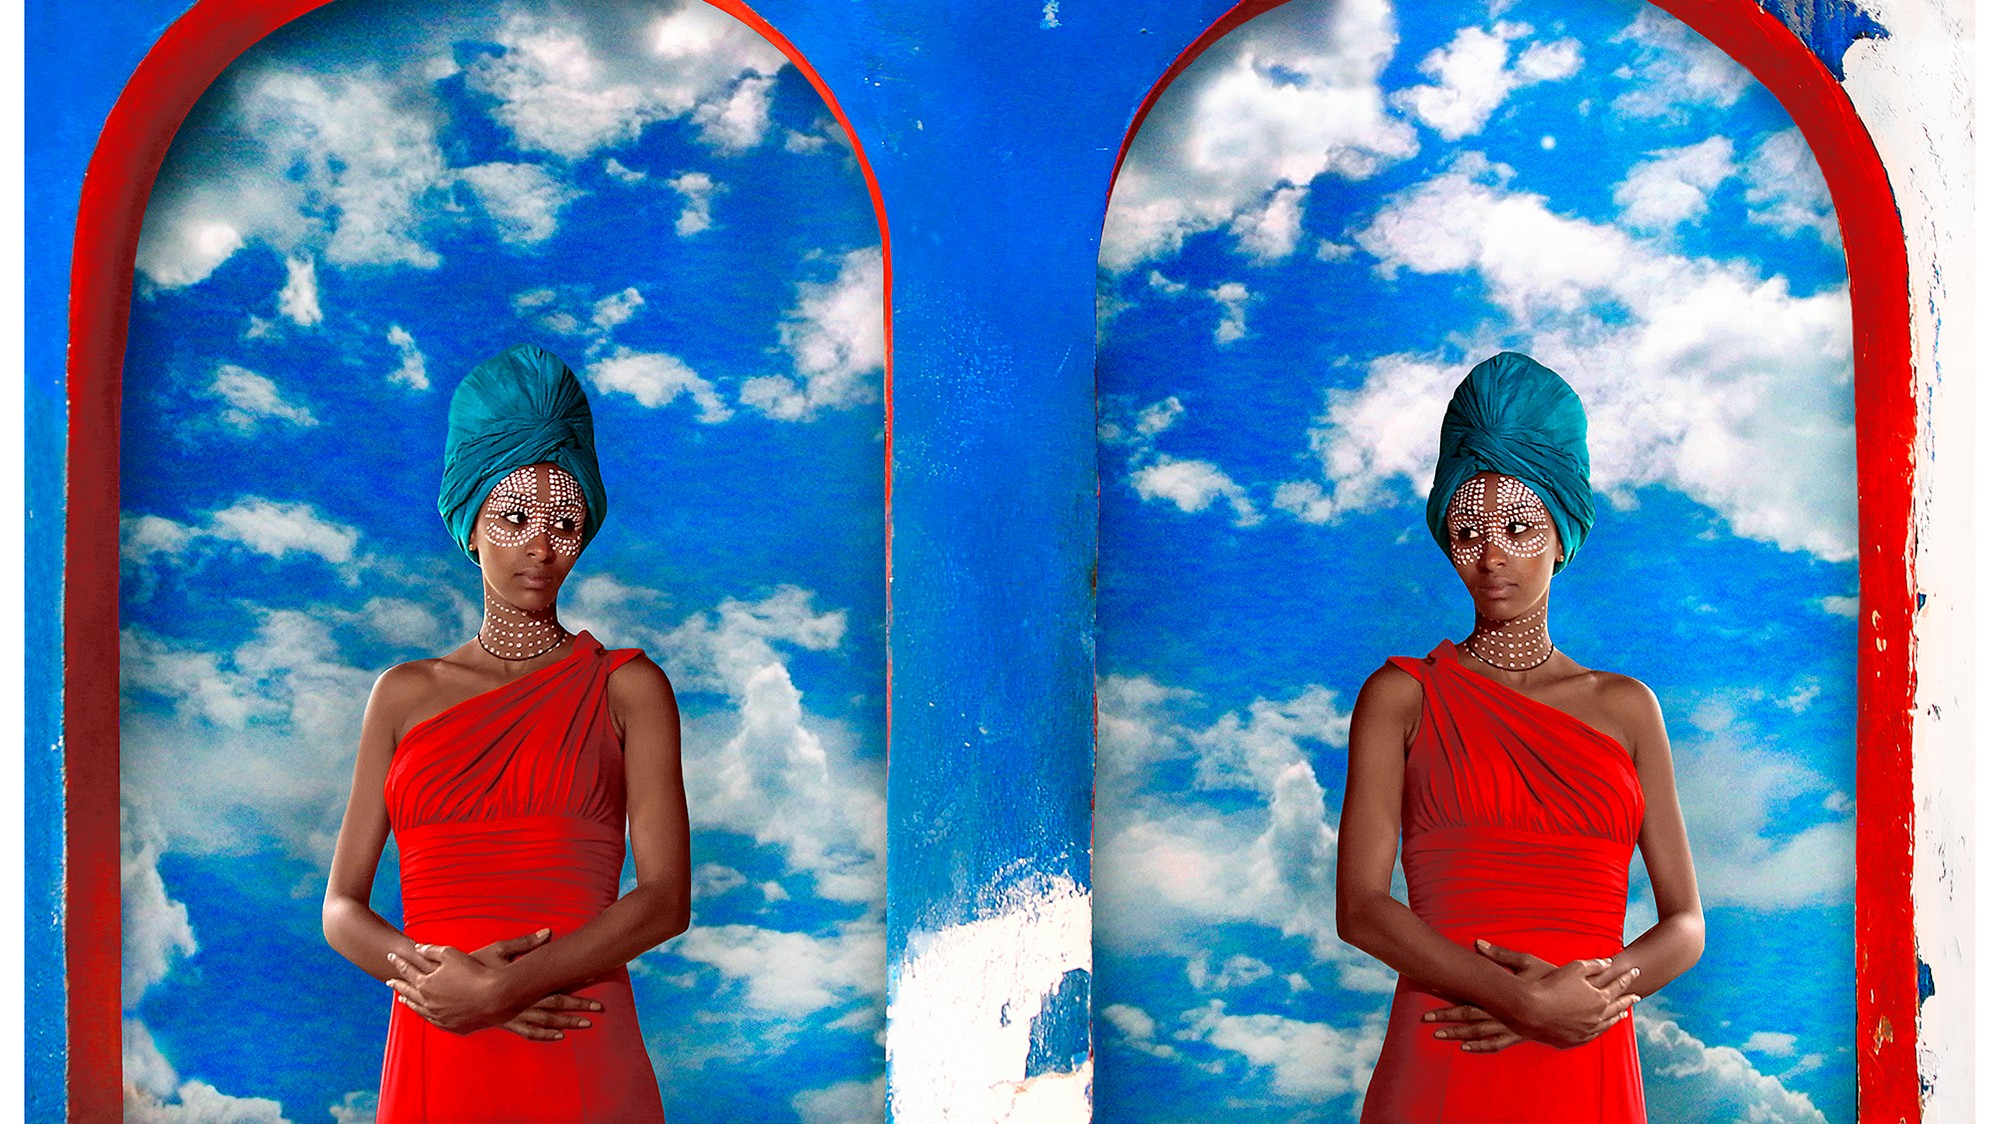 These Stunning Photos Celebrate the Beauty and Power of Ethiopia